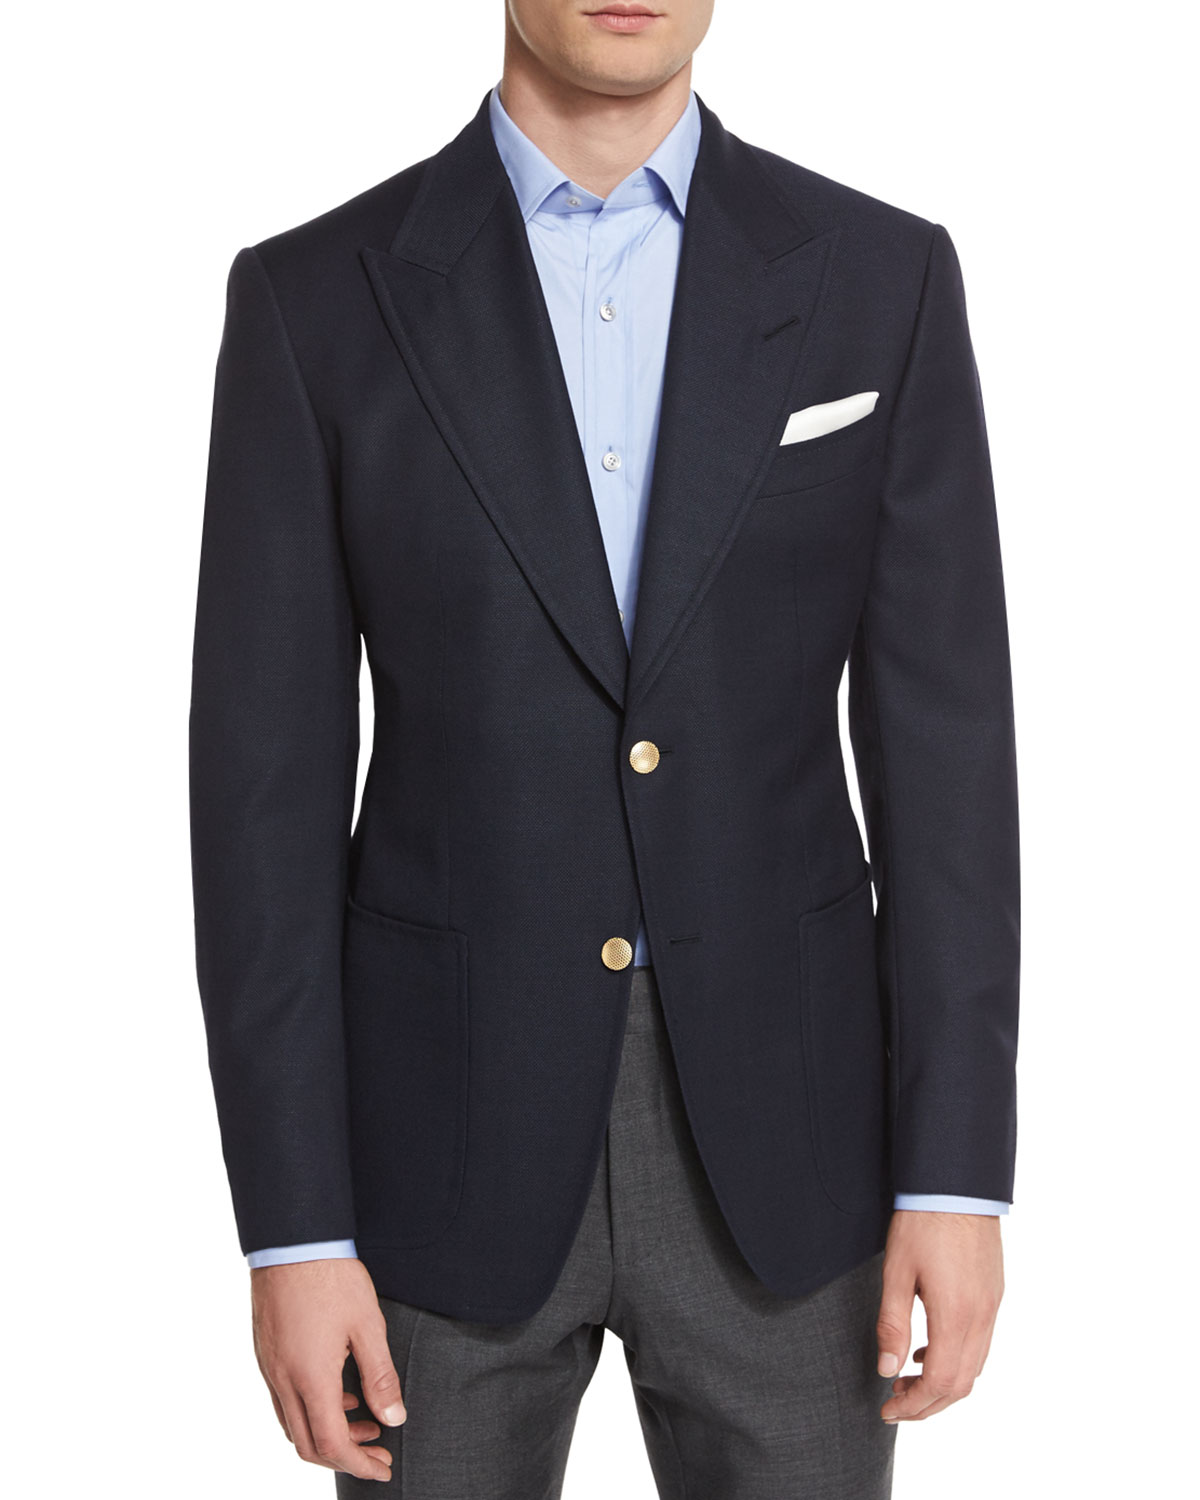 77672b7742b0 Mens Peak Lapel Jacket | Neiman Marcus